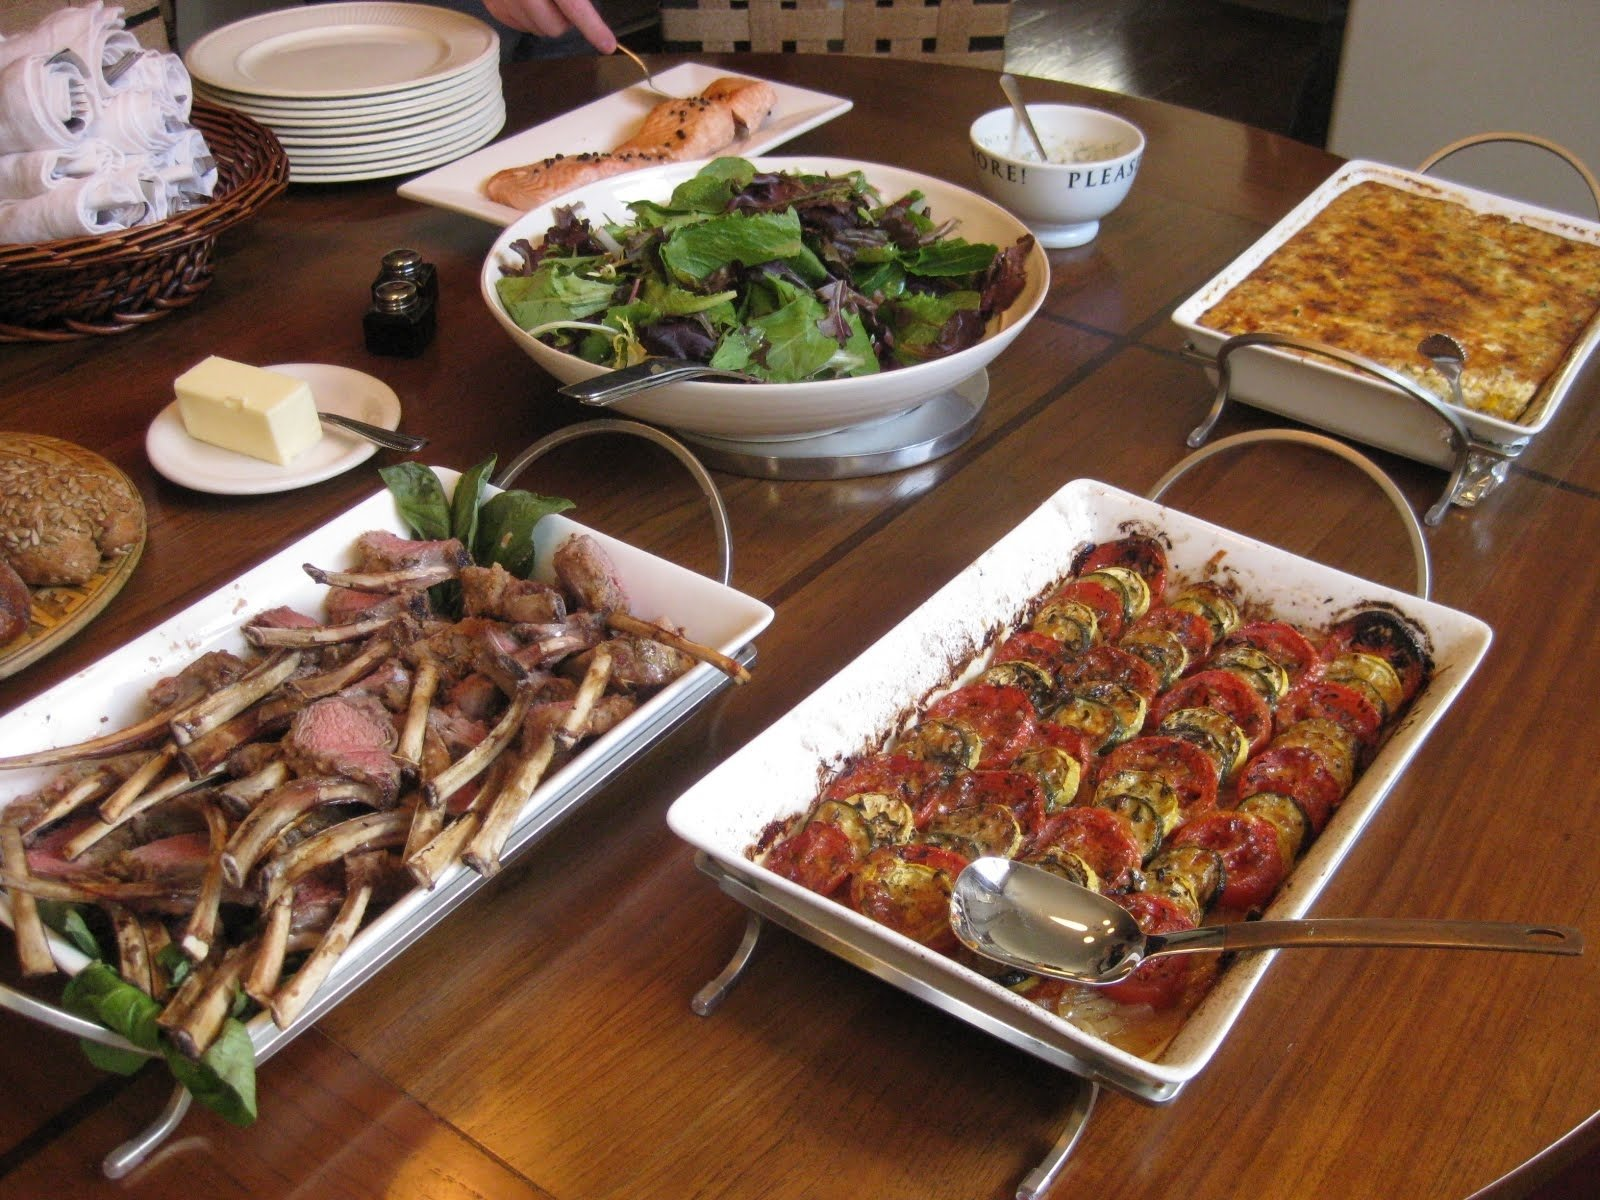 10 Wonderful Ideas For A Dinner Party vegetable tian anatomy of a dinner party buffet for 12 sis boom 1 2020